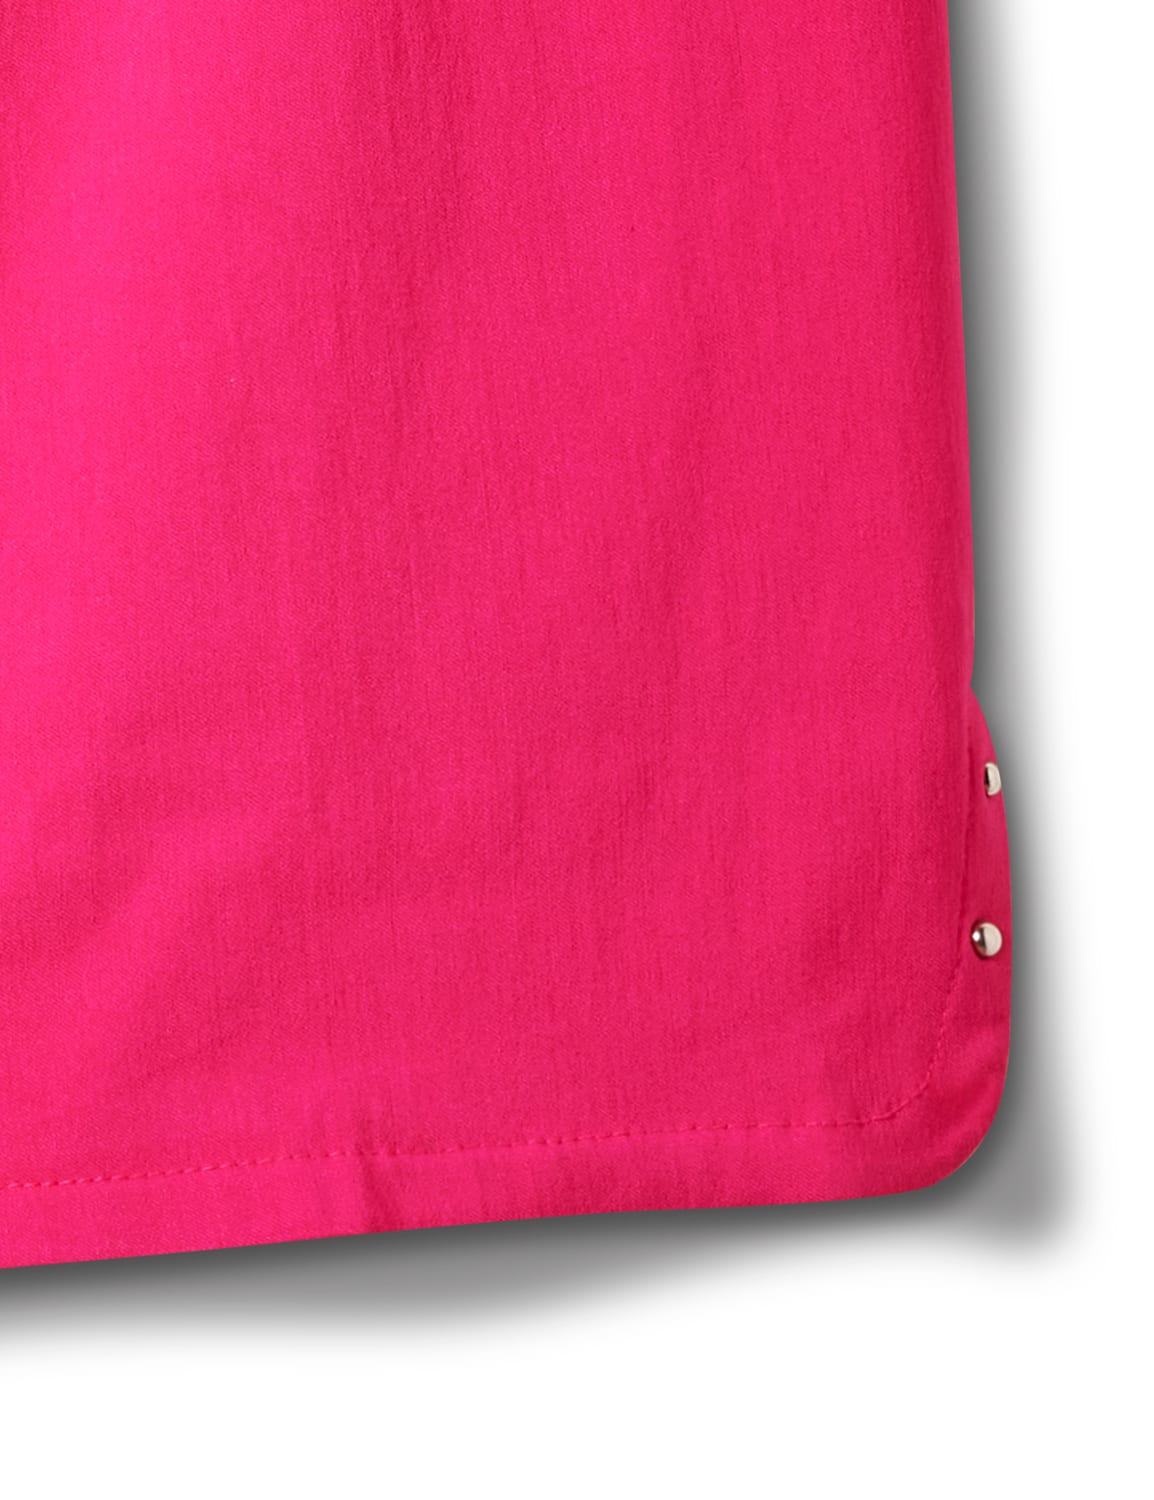 Pull on Shorts with Dome Rivet Trim - Hot Pink - Front